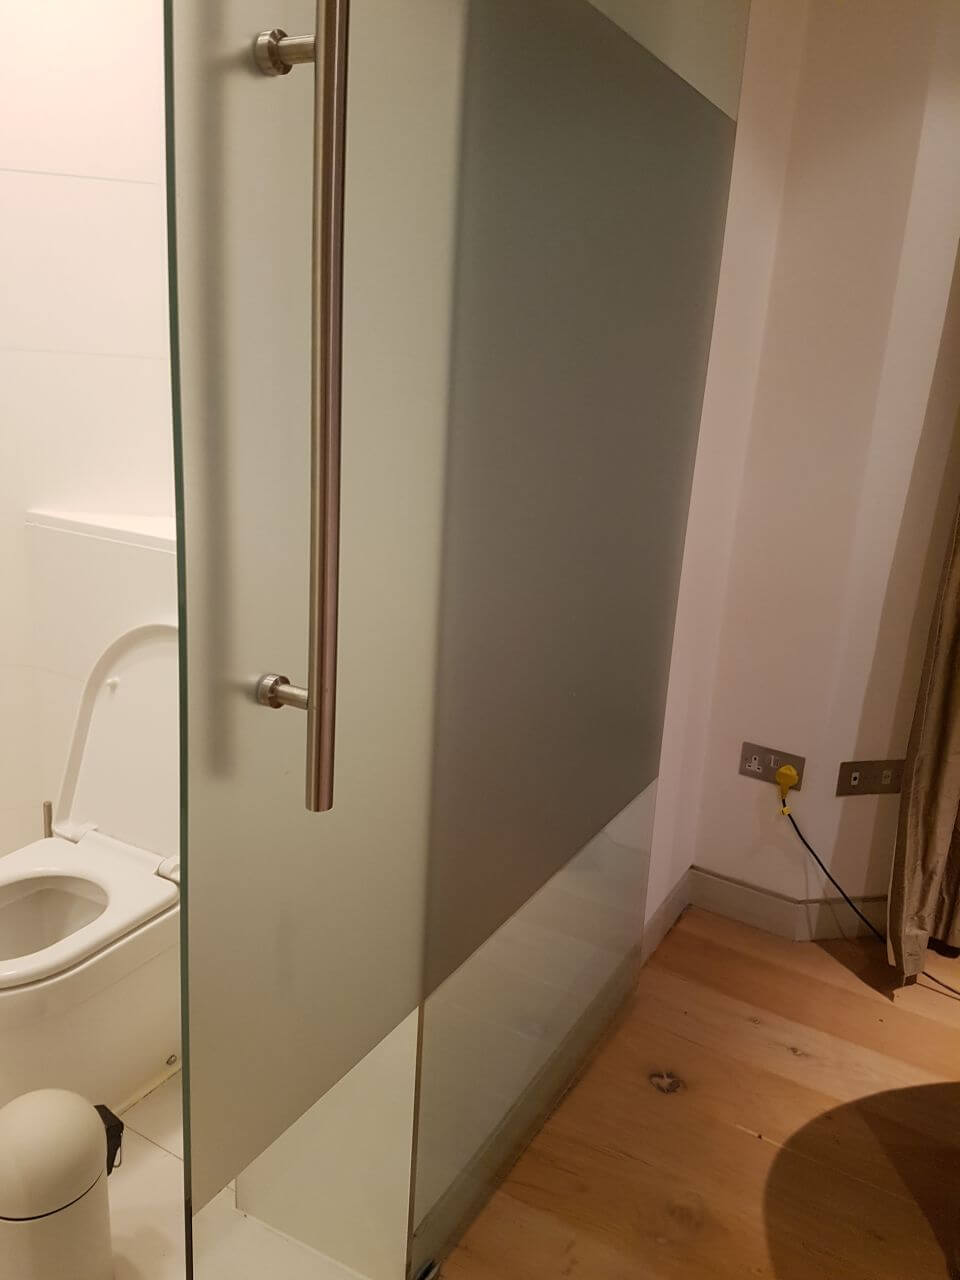 cleaning services Enfield